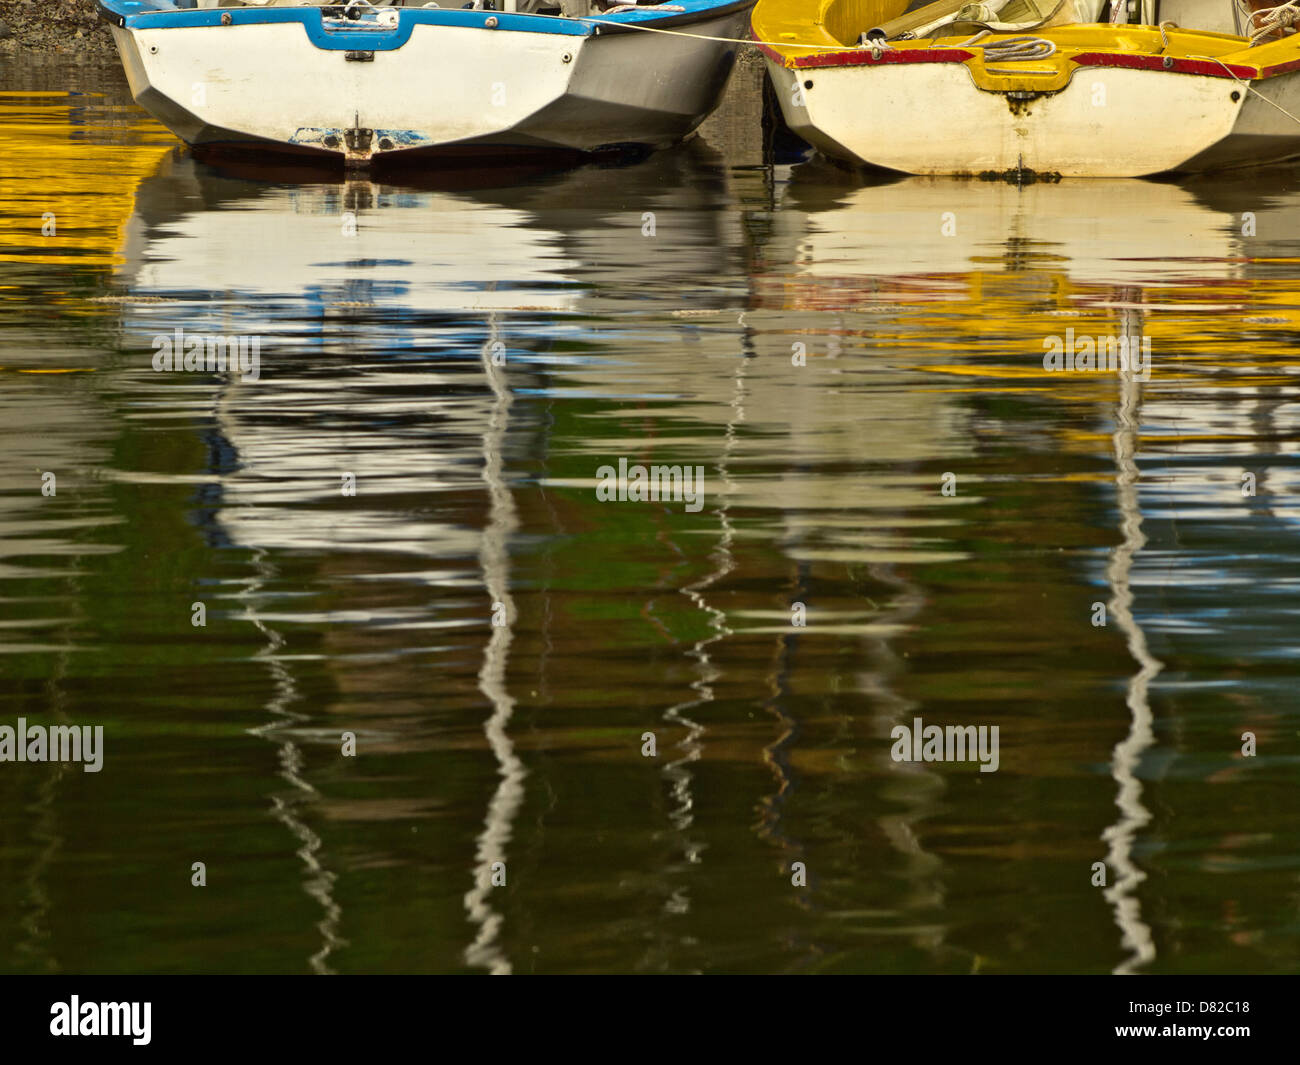 Contemporary abstract picture of the boats at the shore of the lake, Nicol End, Lake District, Cumbria, UK - Stock Image